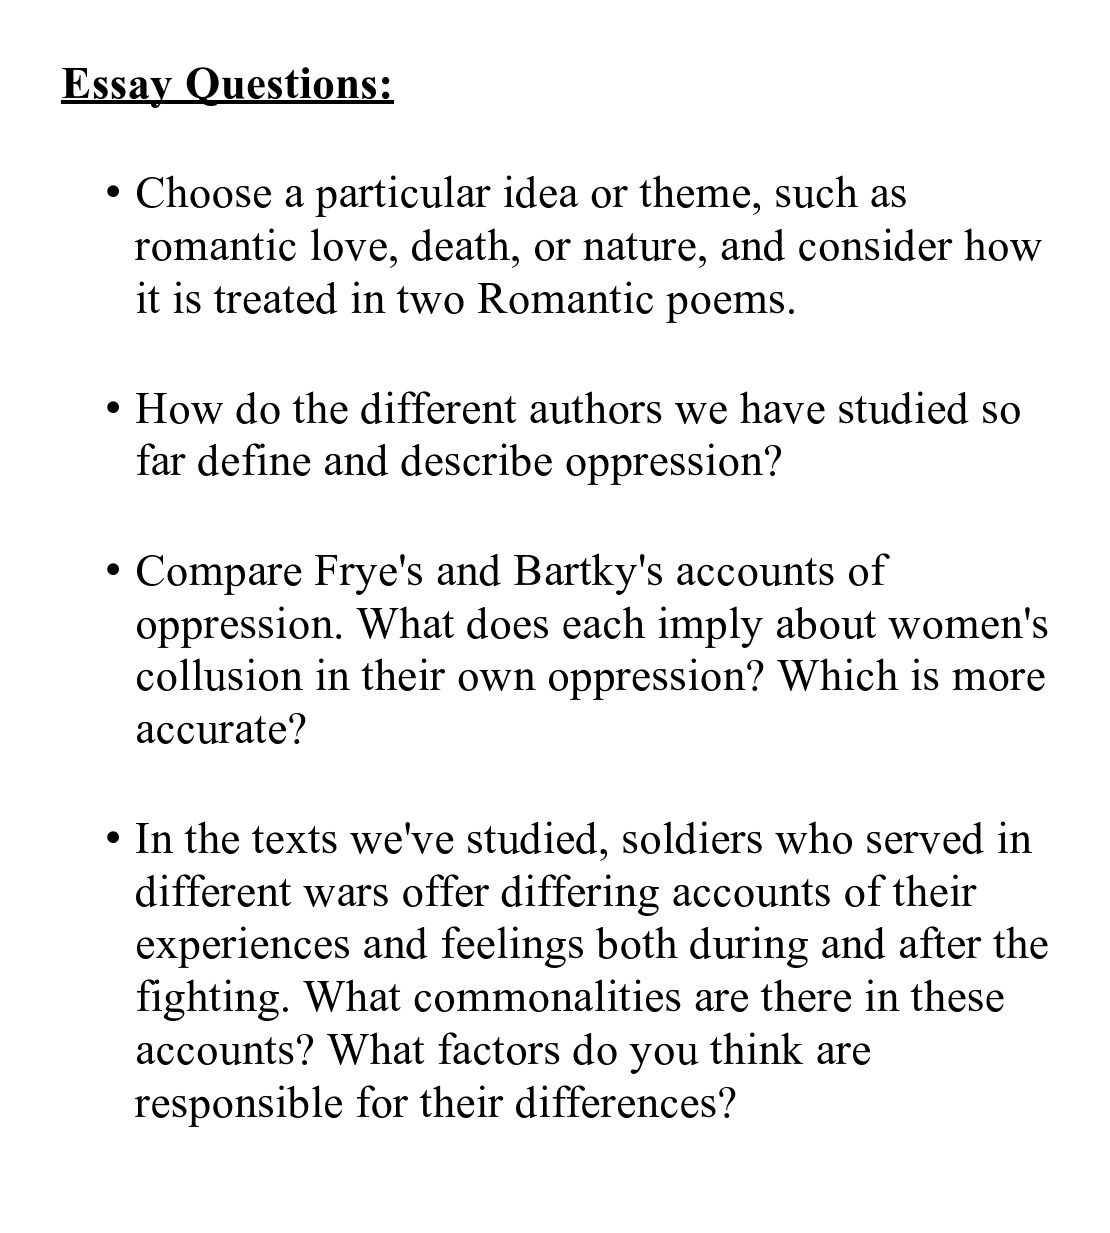 Examples Of Thesis Statements For Narrative Essays Expository Essays Topics Ideas For English Essay Fun Persuasive High School  Good Topicoliver Twist How Computer Science Essay also Good Essay Topics For High School Expository Essays Topics Ideas For English Essay Fun Persuasive  English Literature Essays